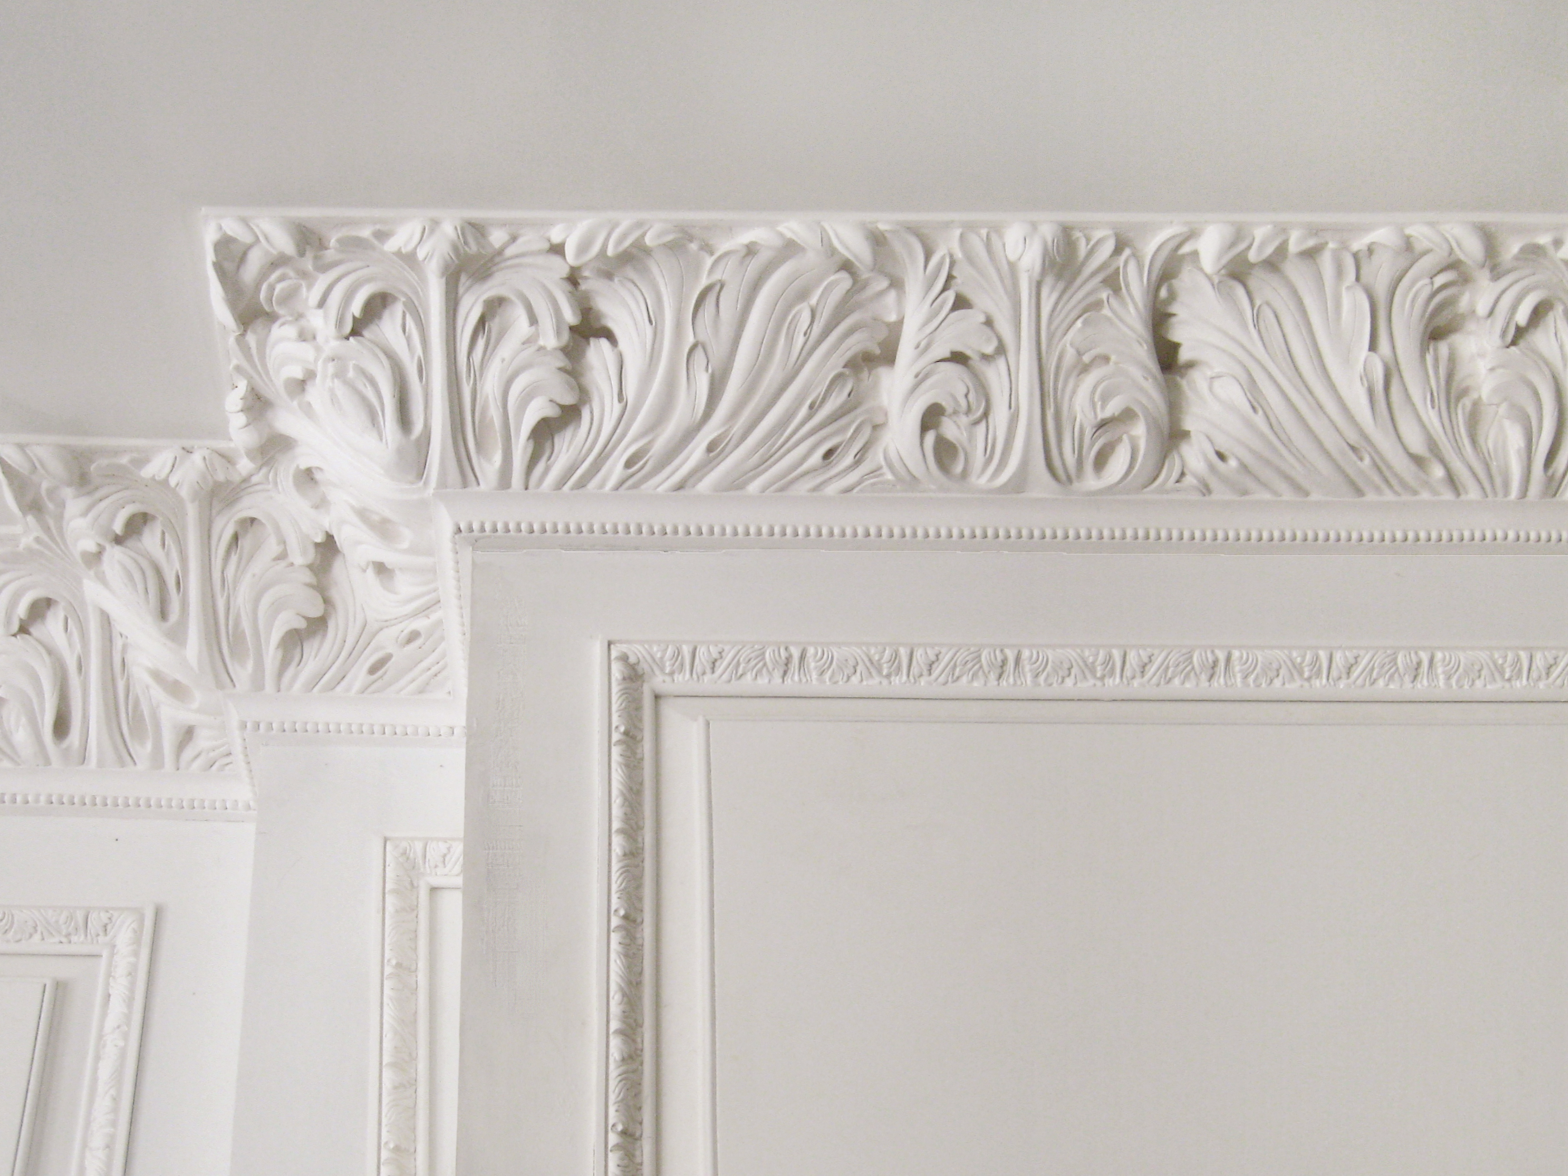 Ornamental plaster decorative ceiling